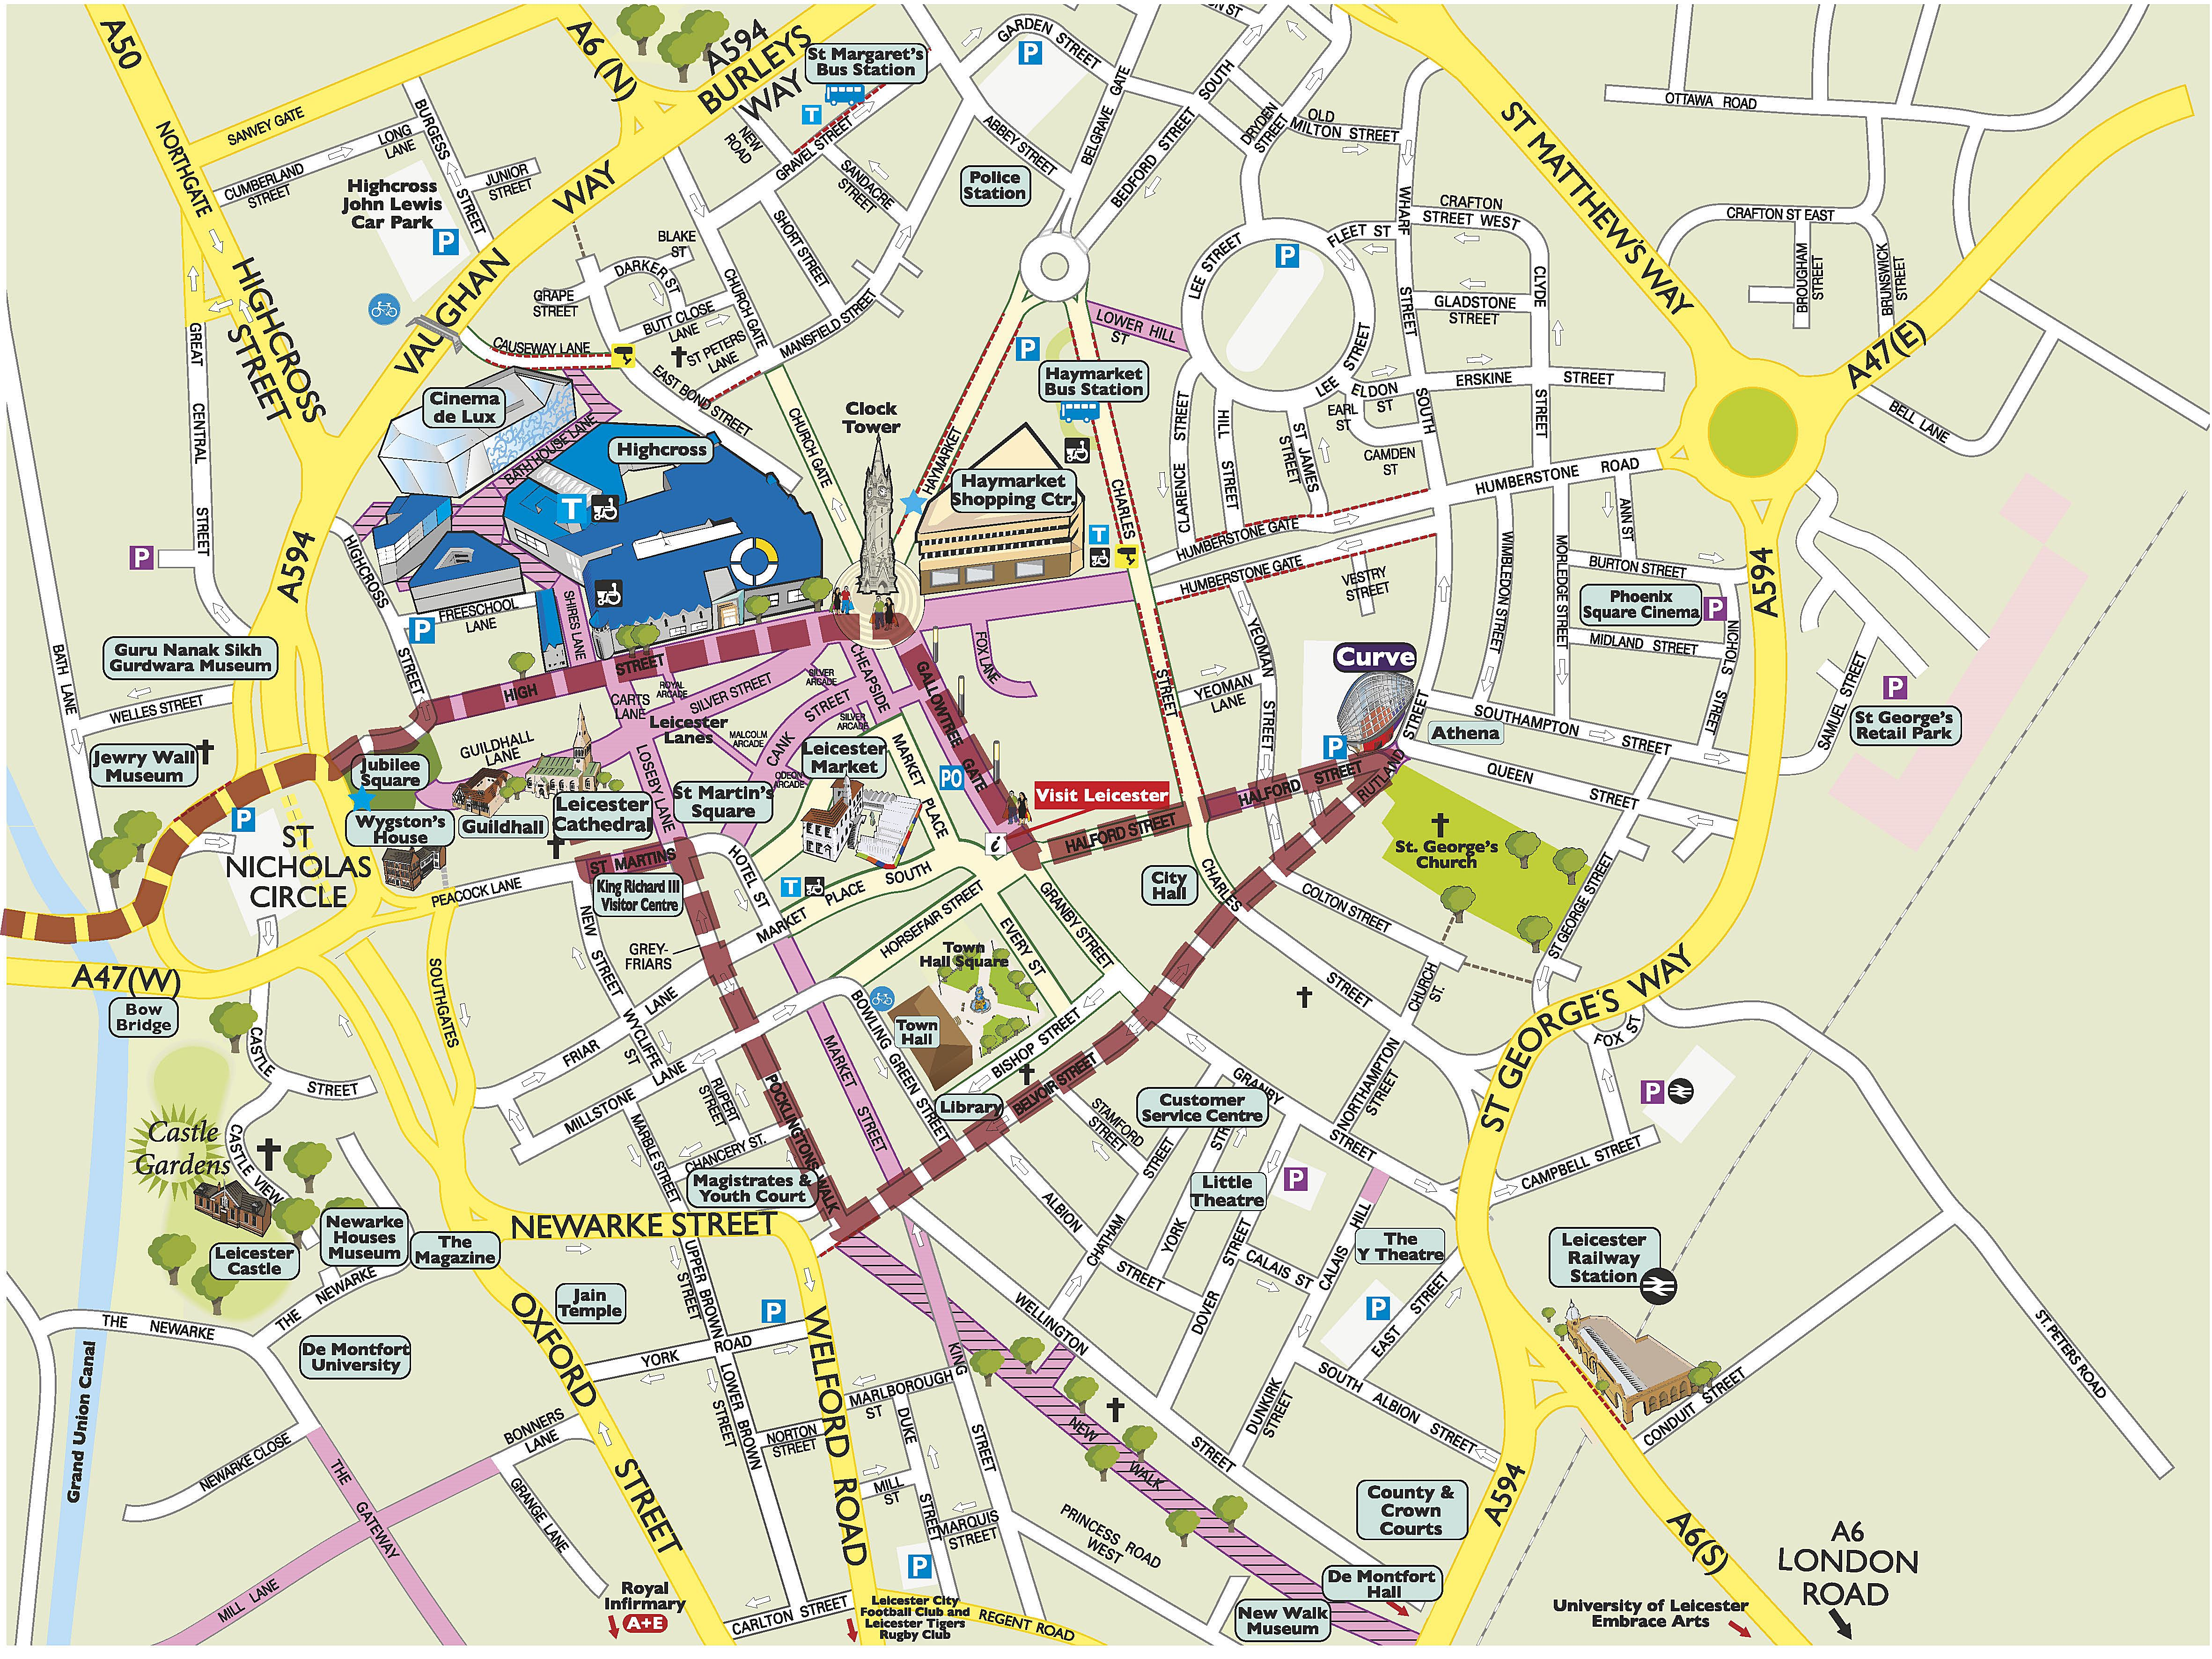 Leicester City Centre Map Large Leicester Maps for Free Download and Print | High Resolution  Leicester City Centre Map